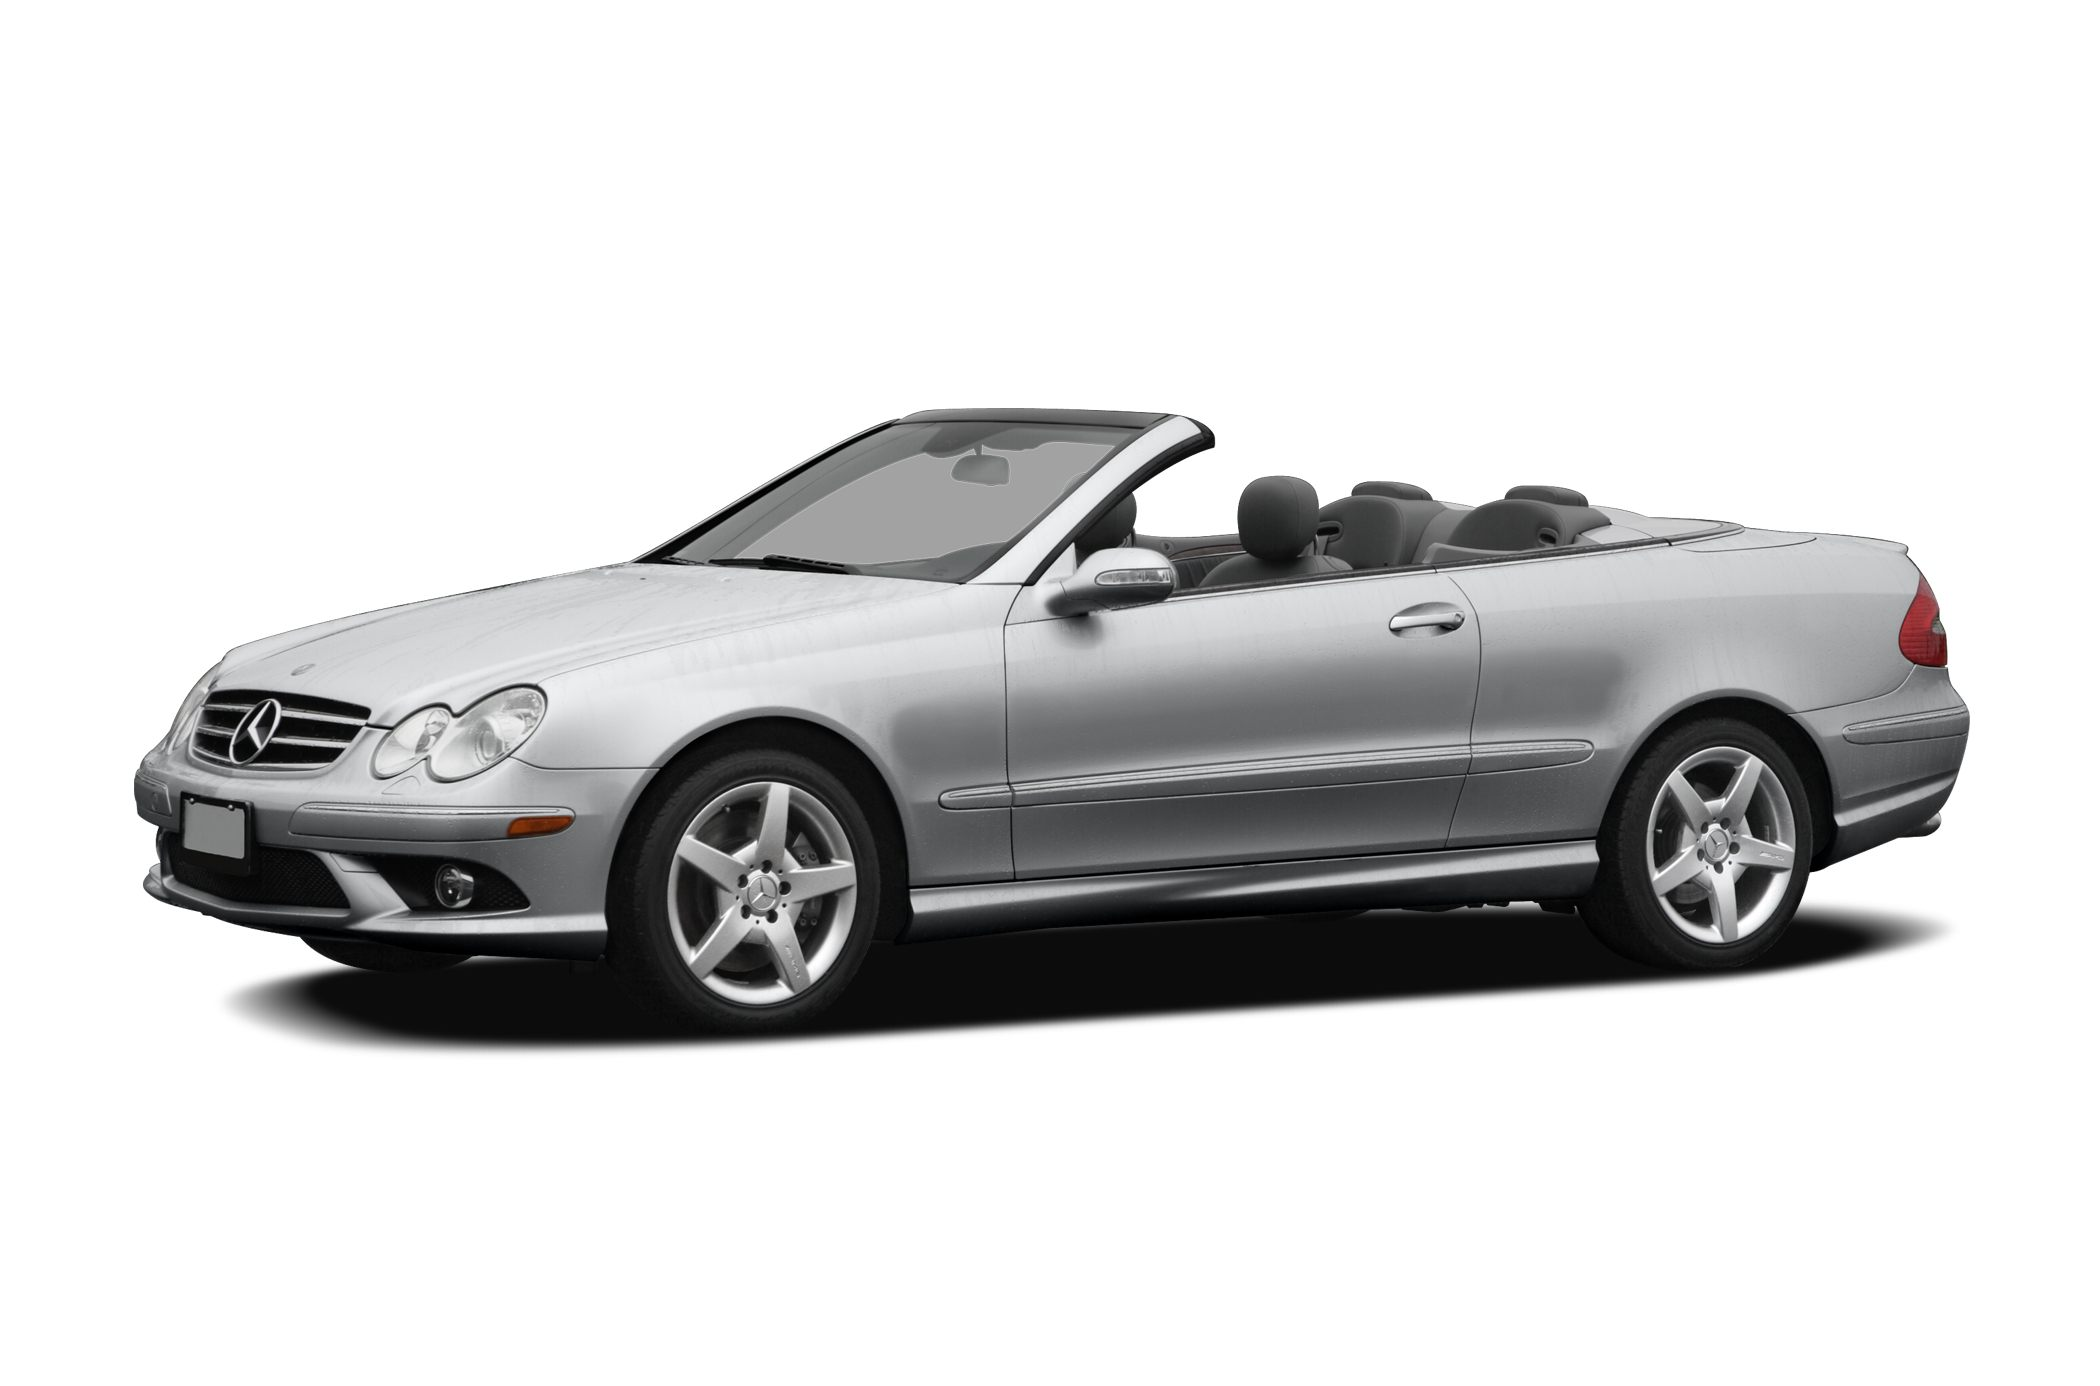 2006 Mercedes Benz Clk Class Specs And Prices Chevrolet Joy Wiring Diagram